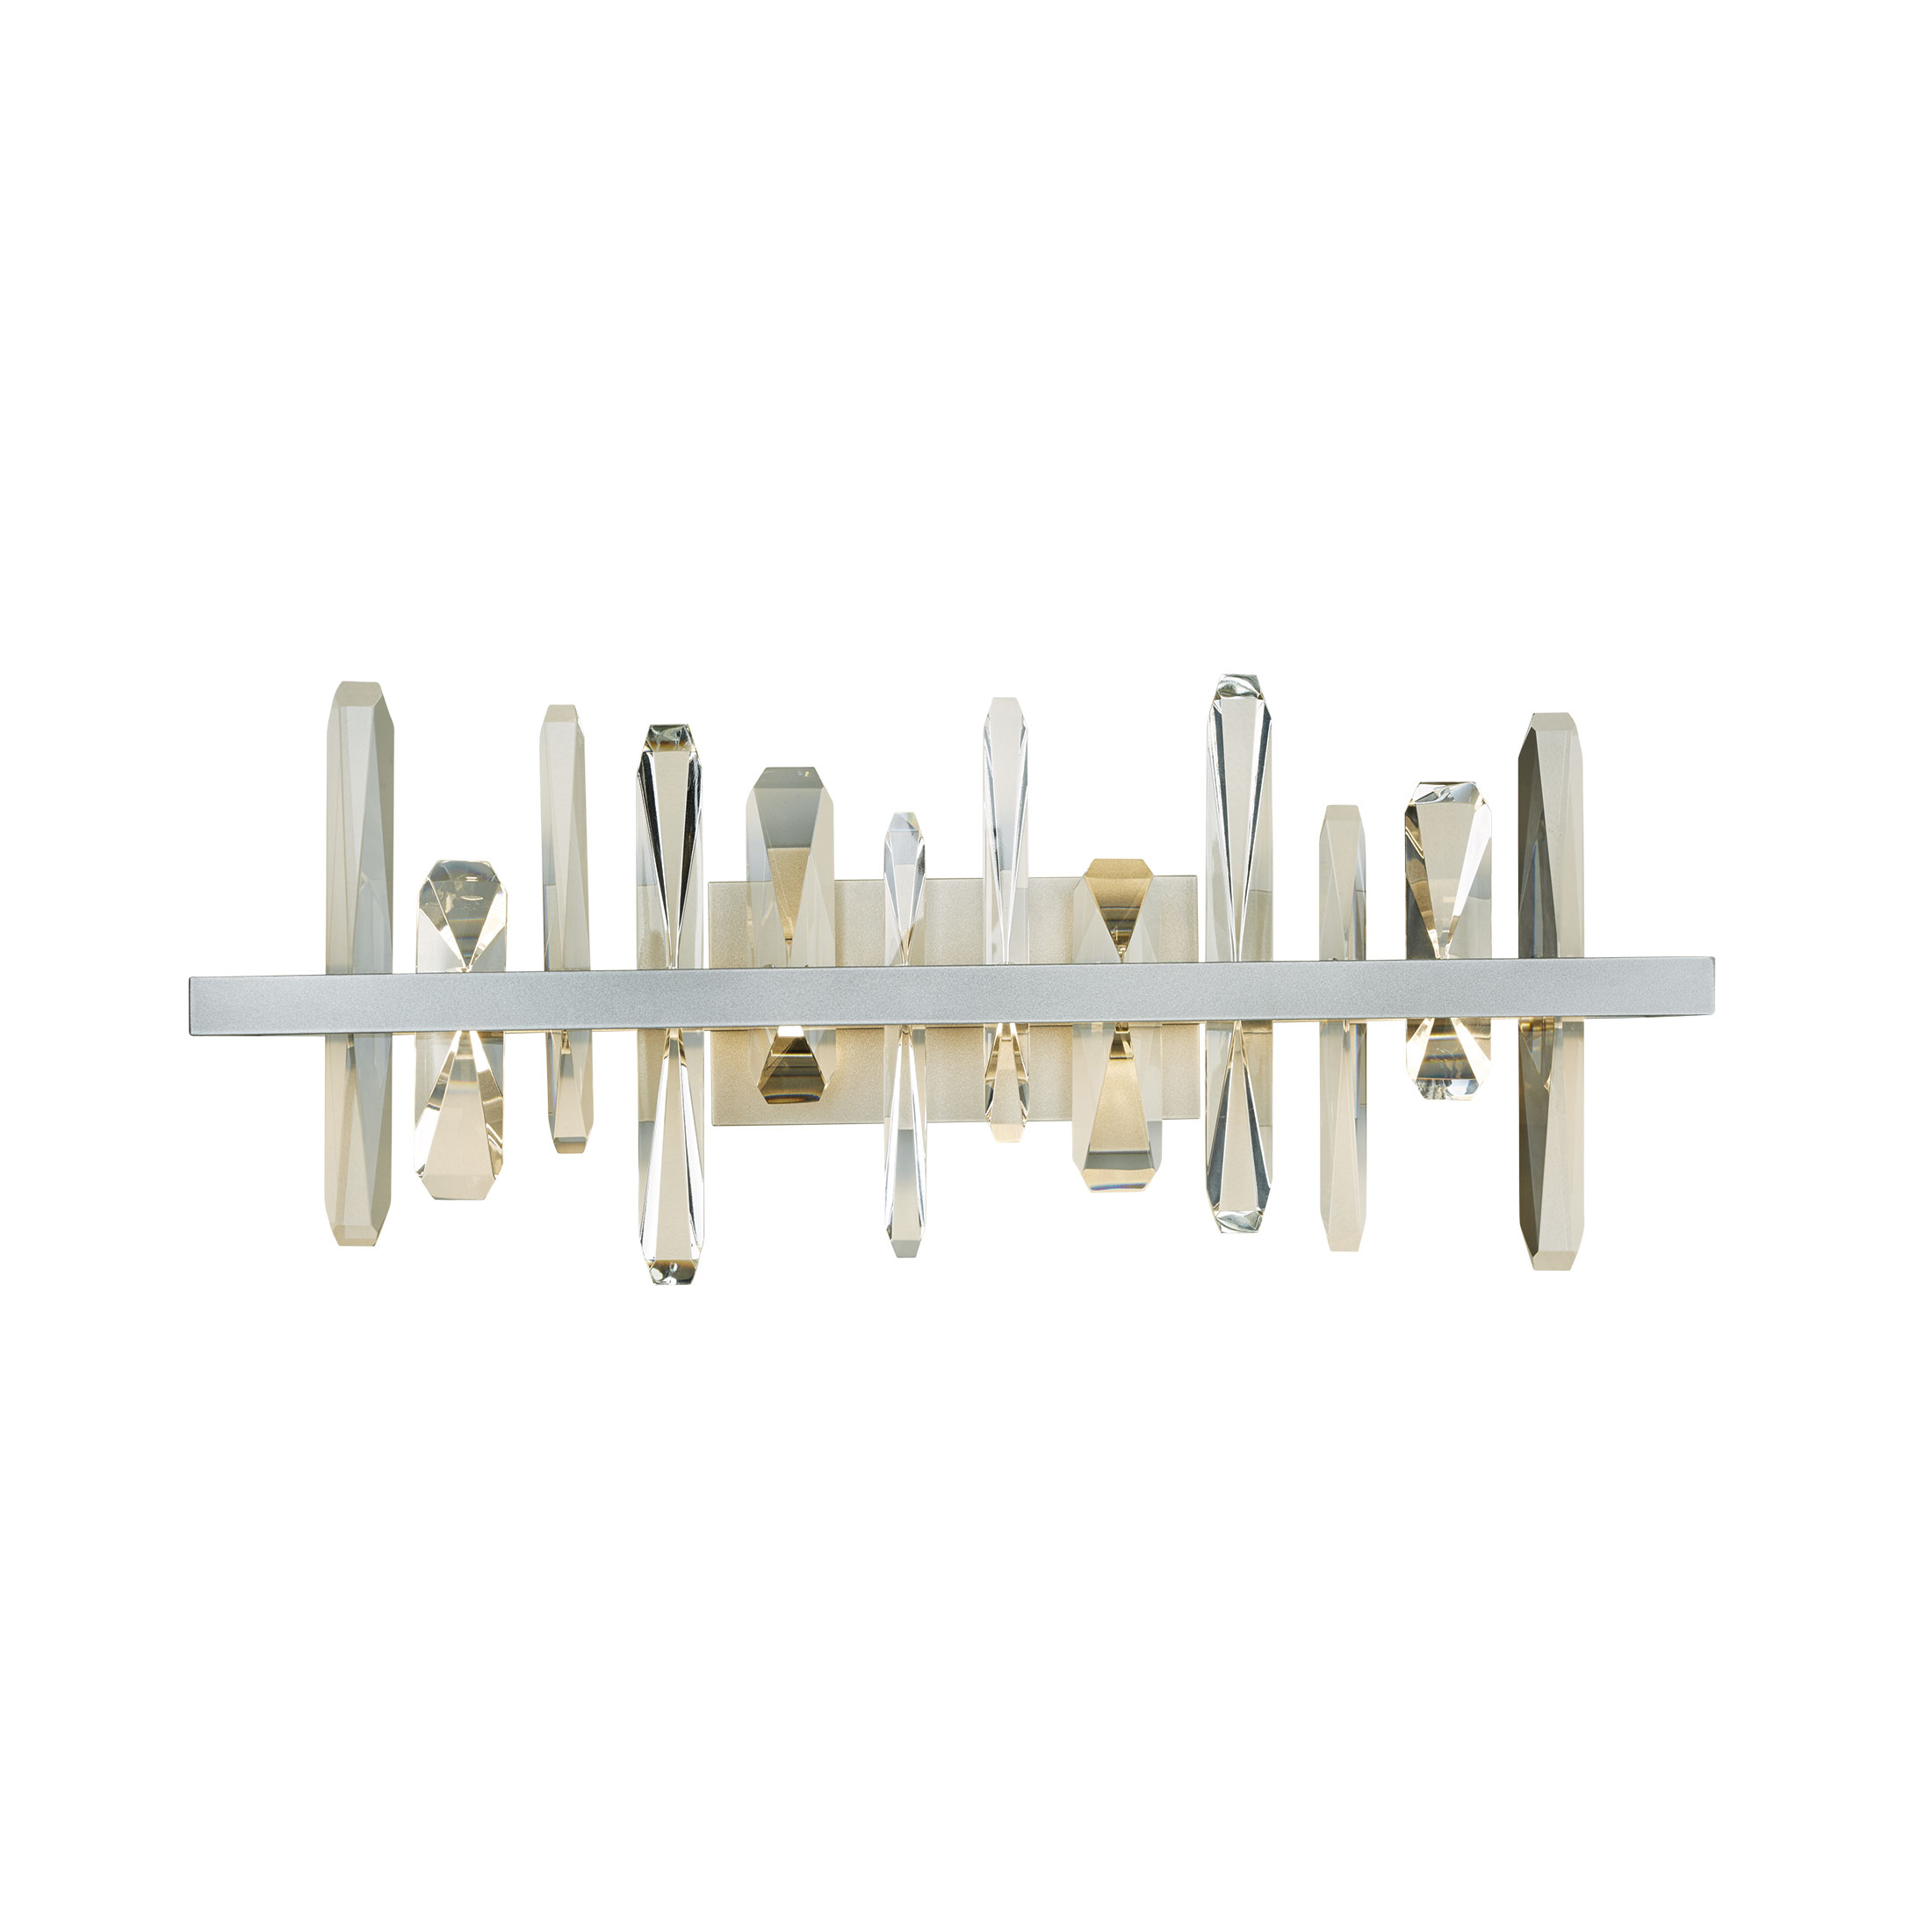 Solitude sconce with crystal towers from Synchronicity by Hubbardton Forge